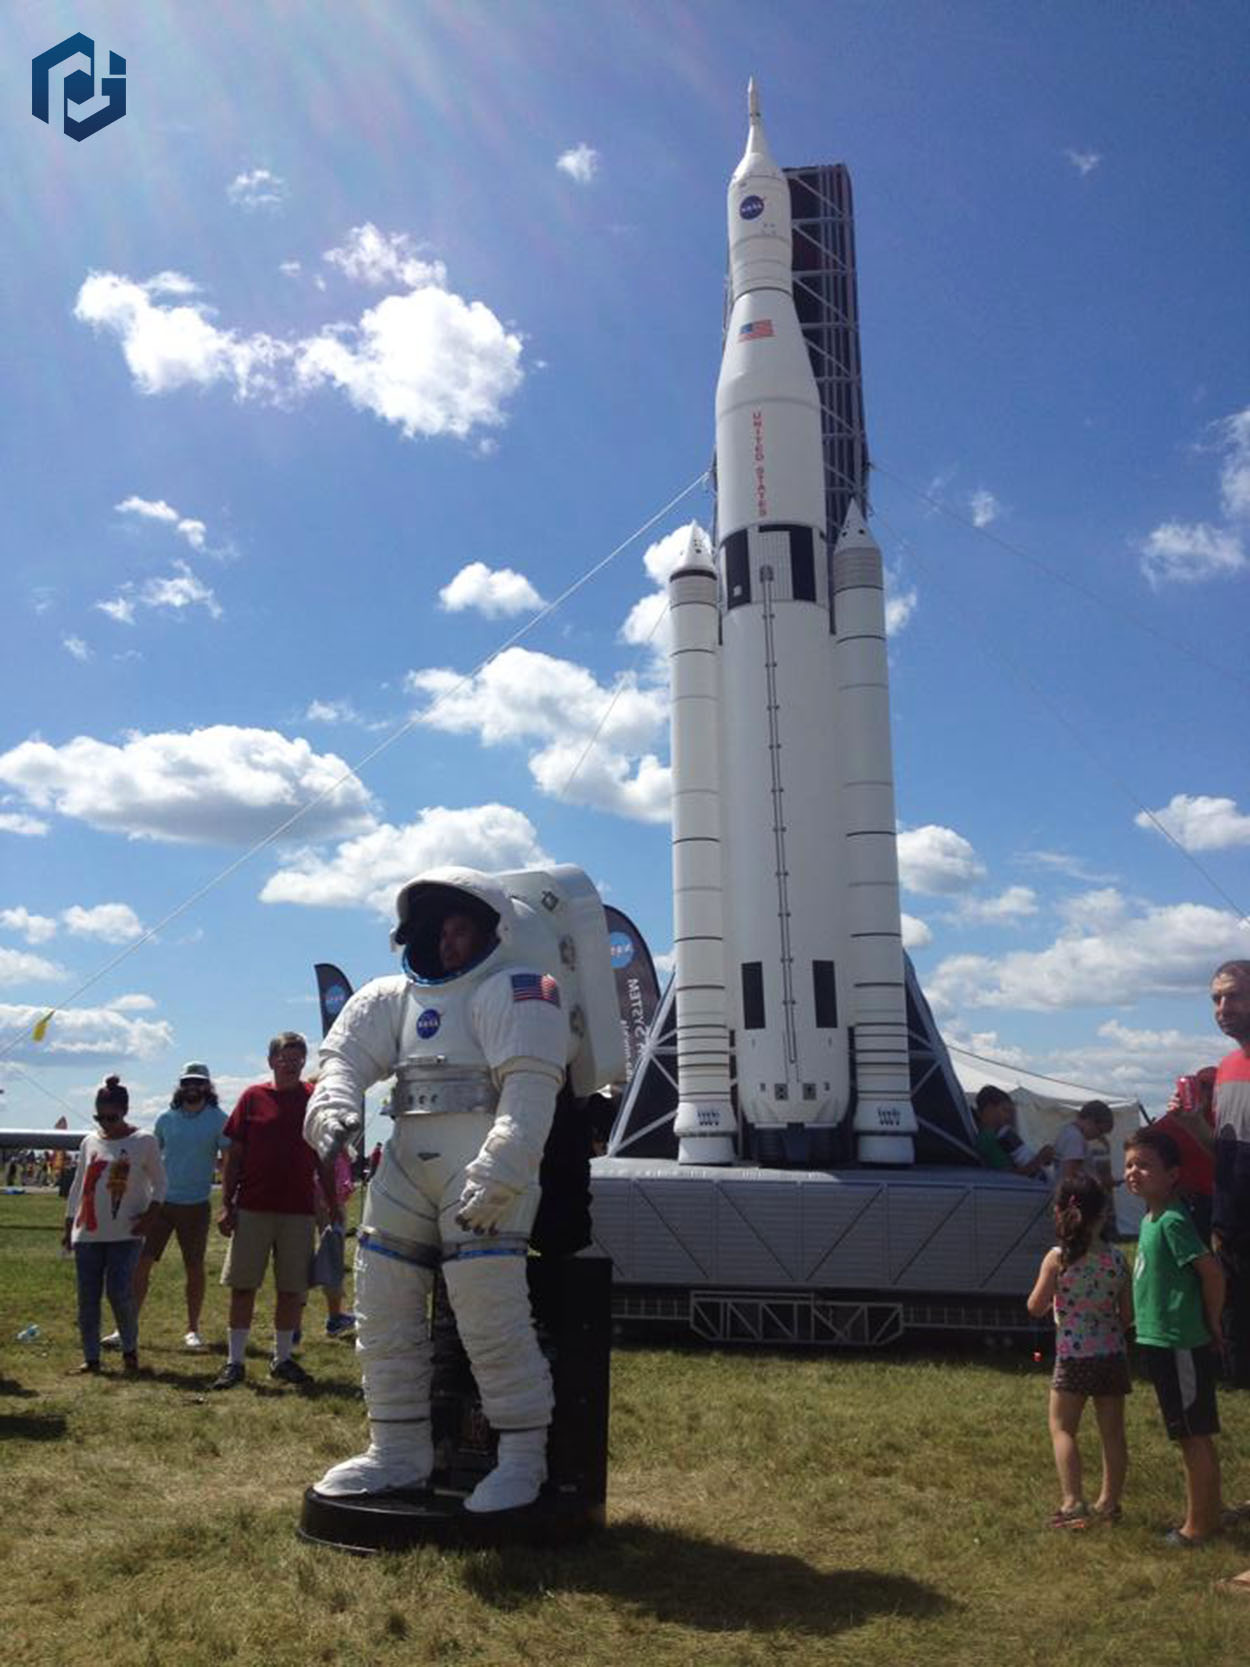 inflatable-space-shuttle-outdoors.jpg